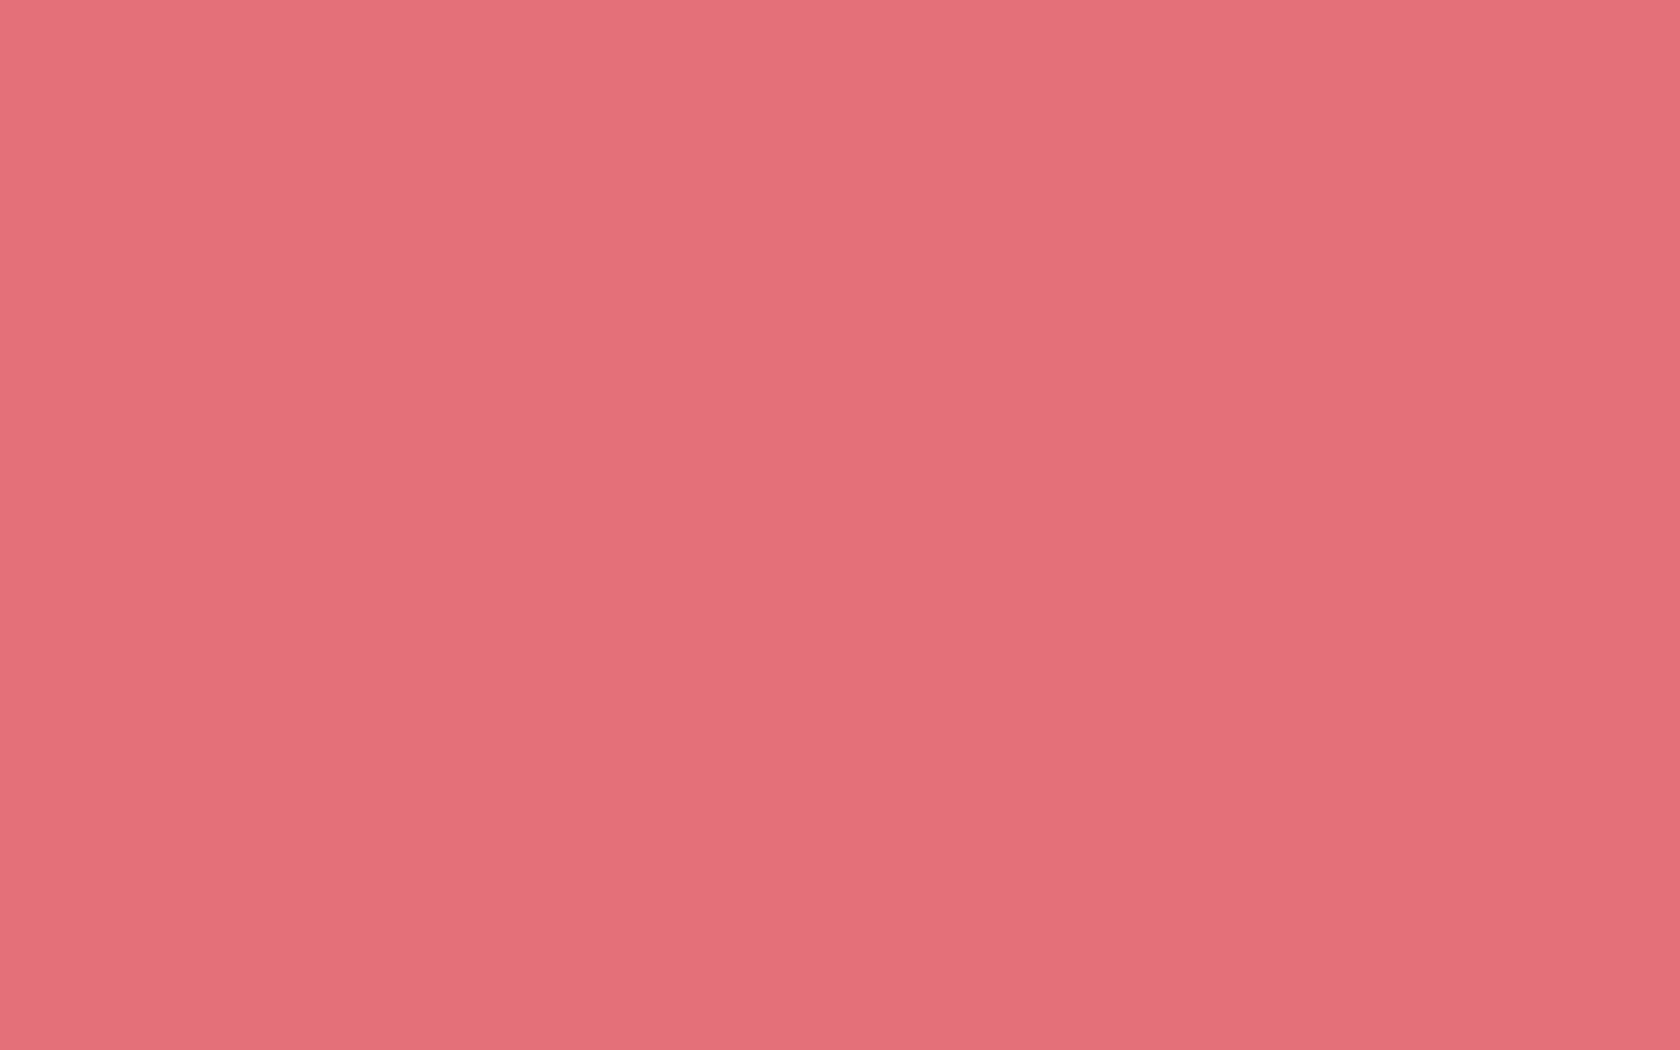 1680x1050 Candy Pink Solid Color Background